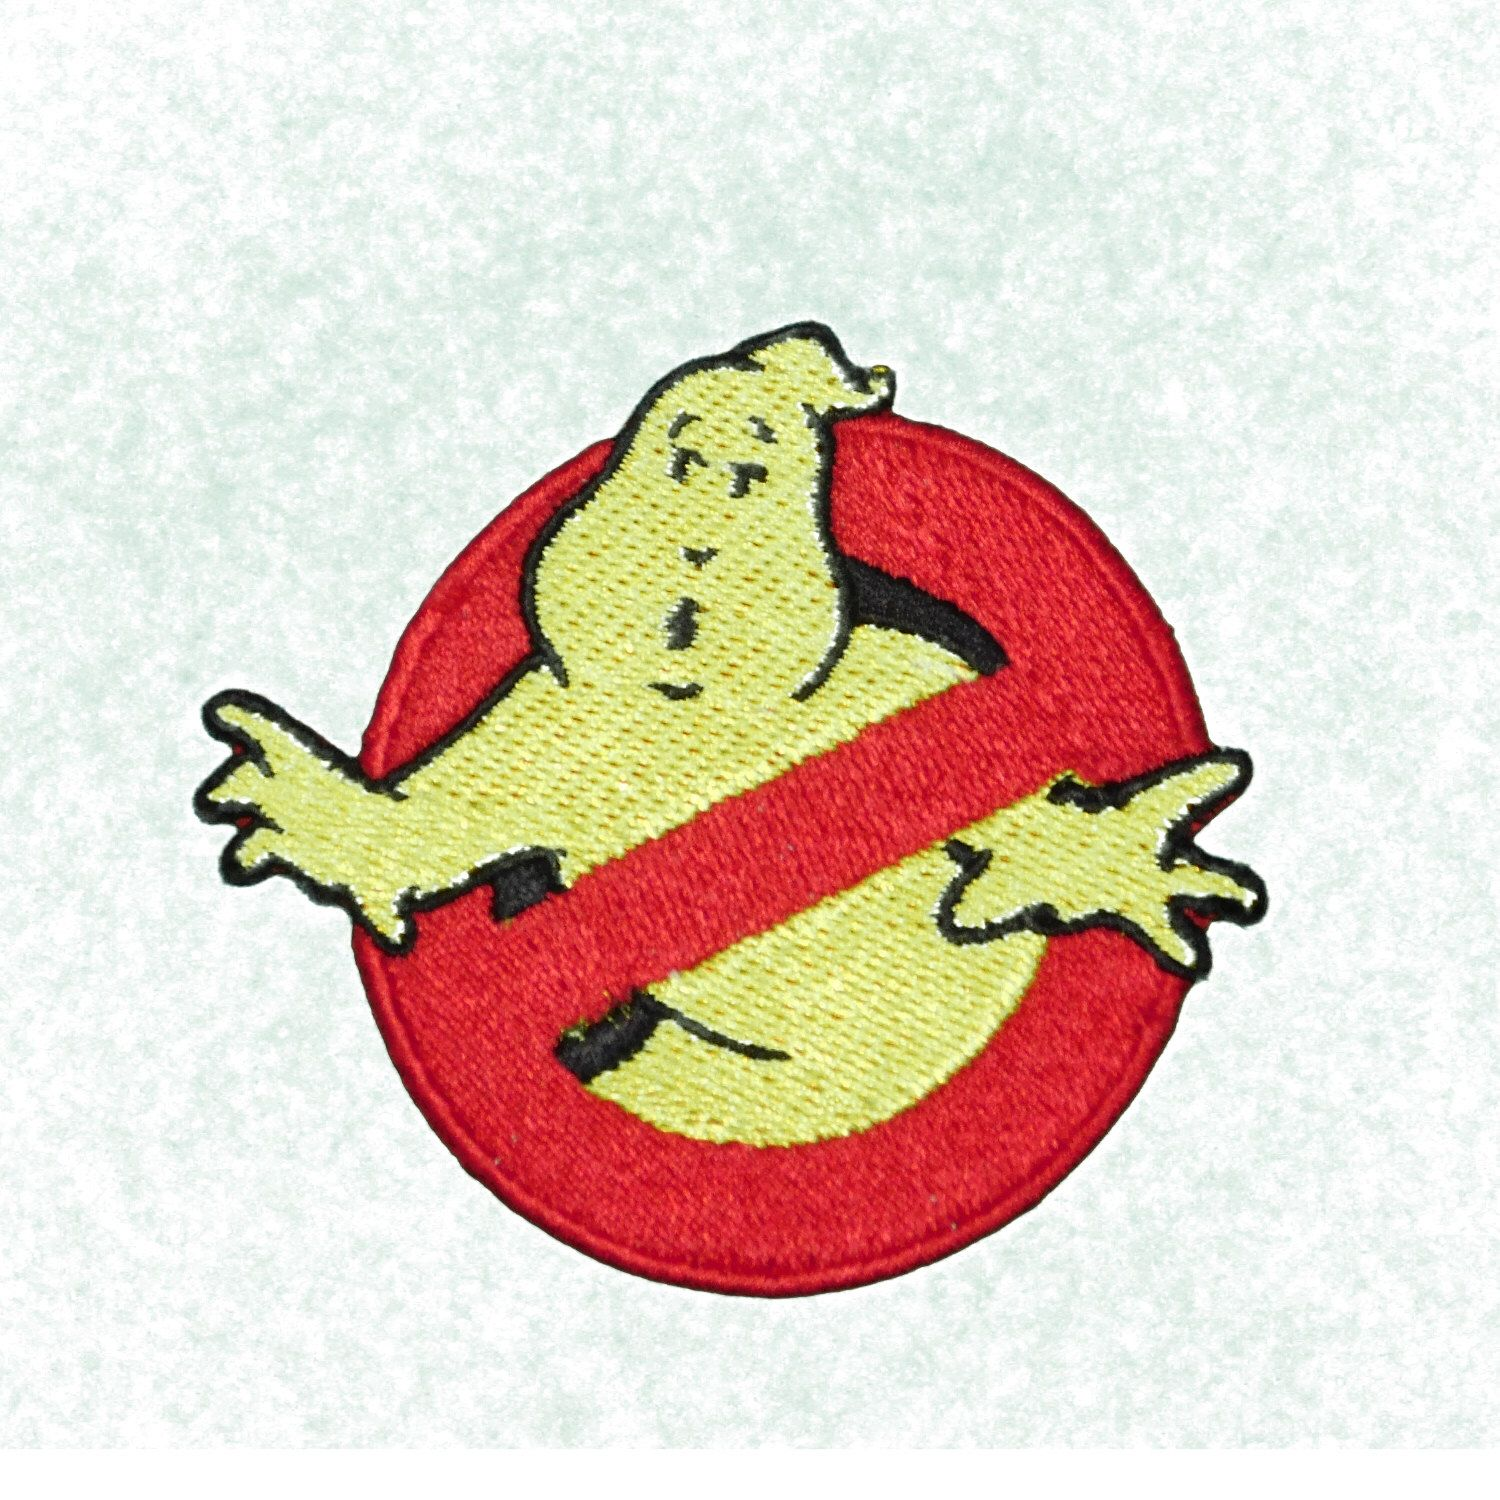 GHOSTBUSTERS Busters Movie Logo Iron on Patch Emblem Reflective Thread Ghost~~sci-fi by StarlitnightPatches on Etsy https://www.etsy.com/listing/249323120/ghostbusters-busters-movie-logo-iron-on